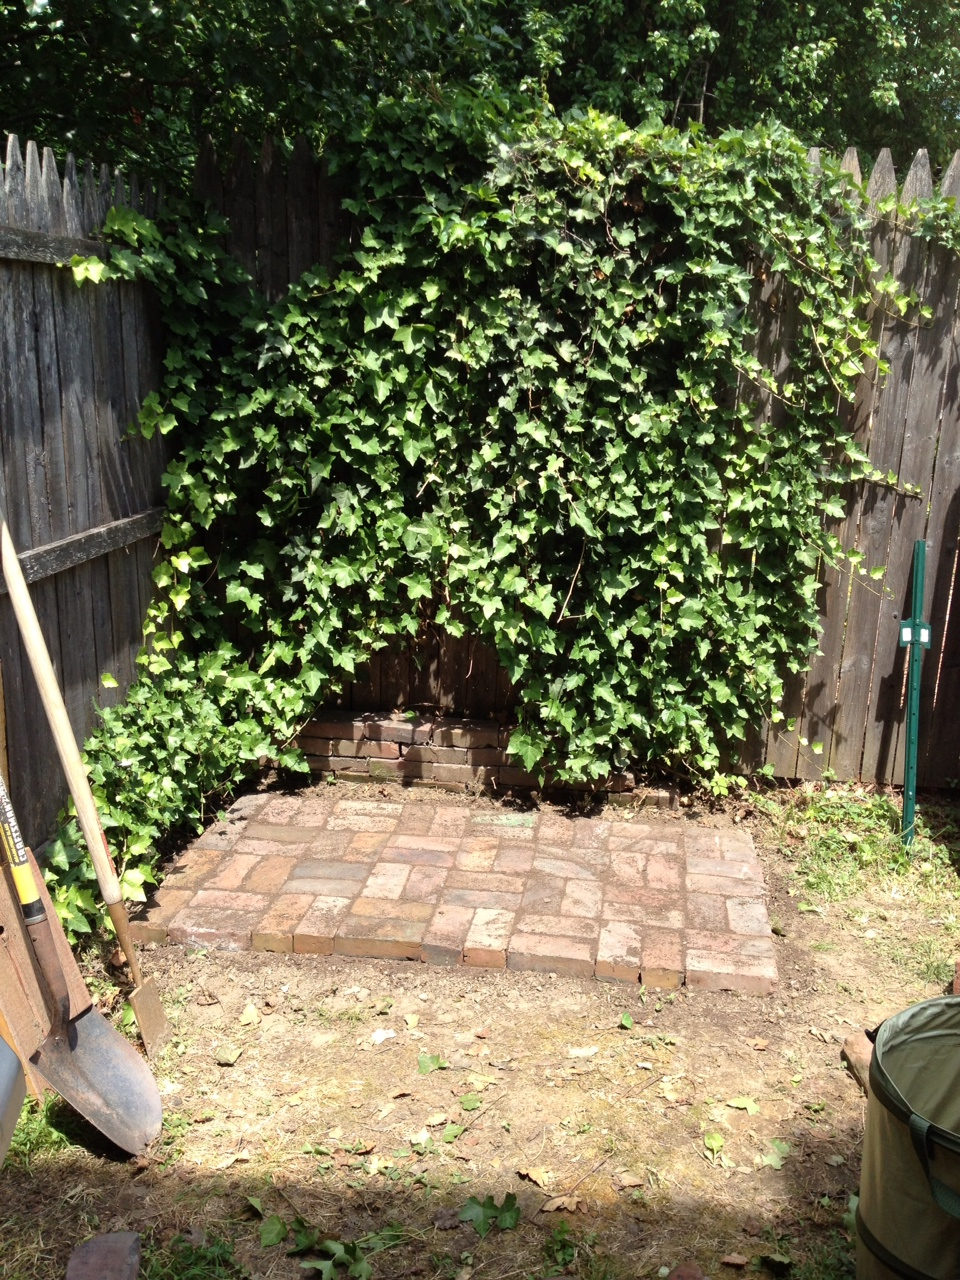 The small brick patio for the shed to sit on.